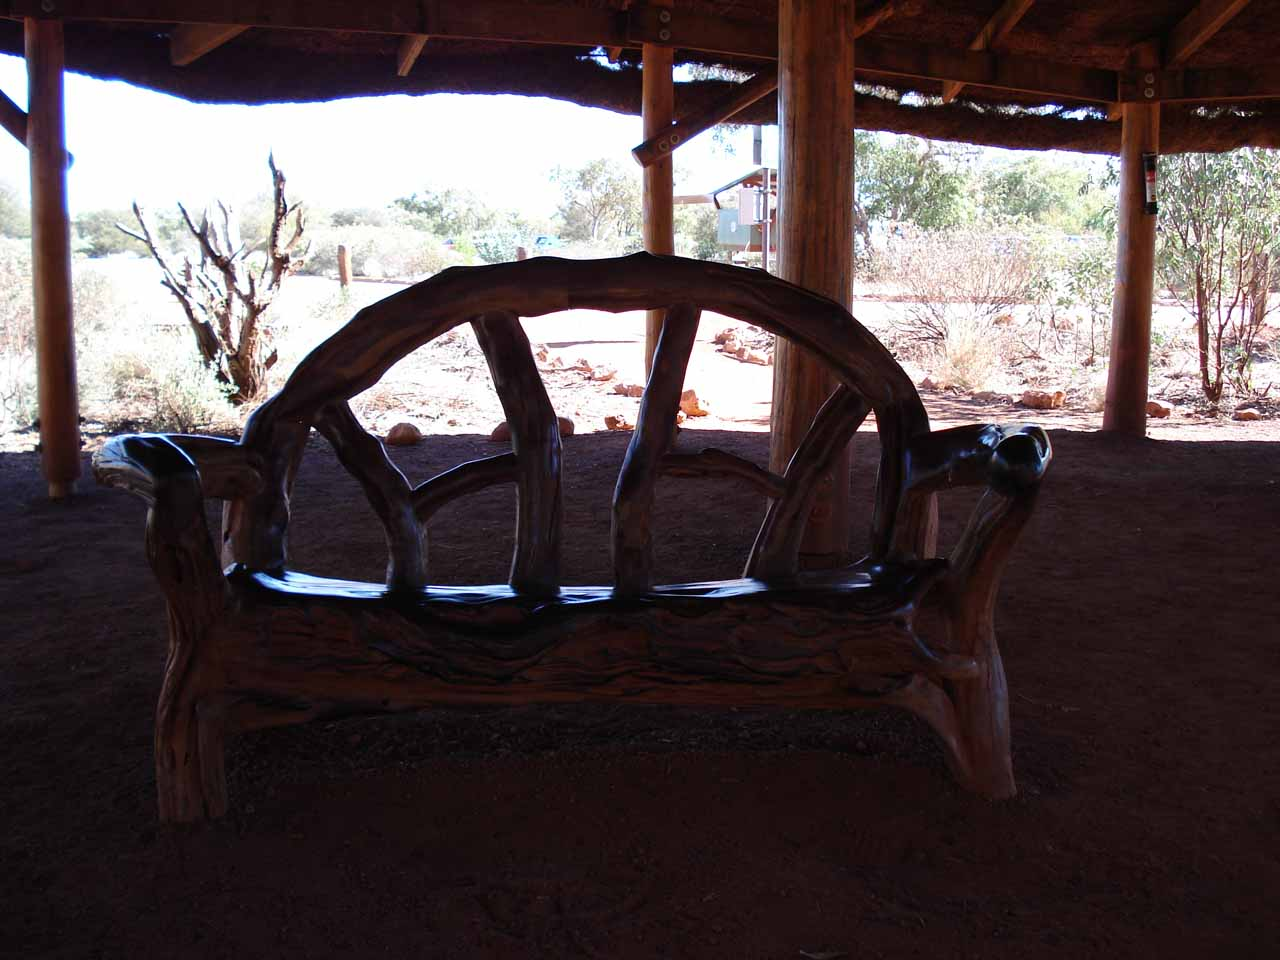 Inside some open-air shelter while we were exploring Kata Tjuta